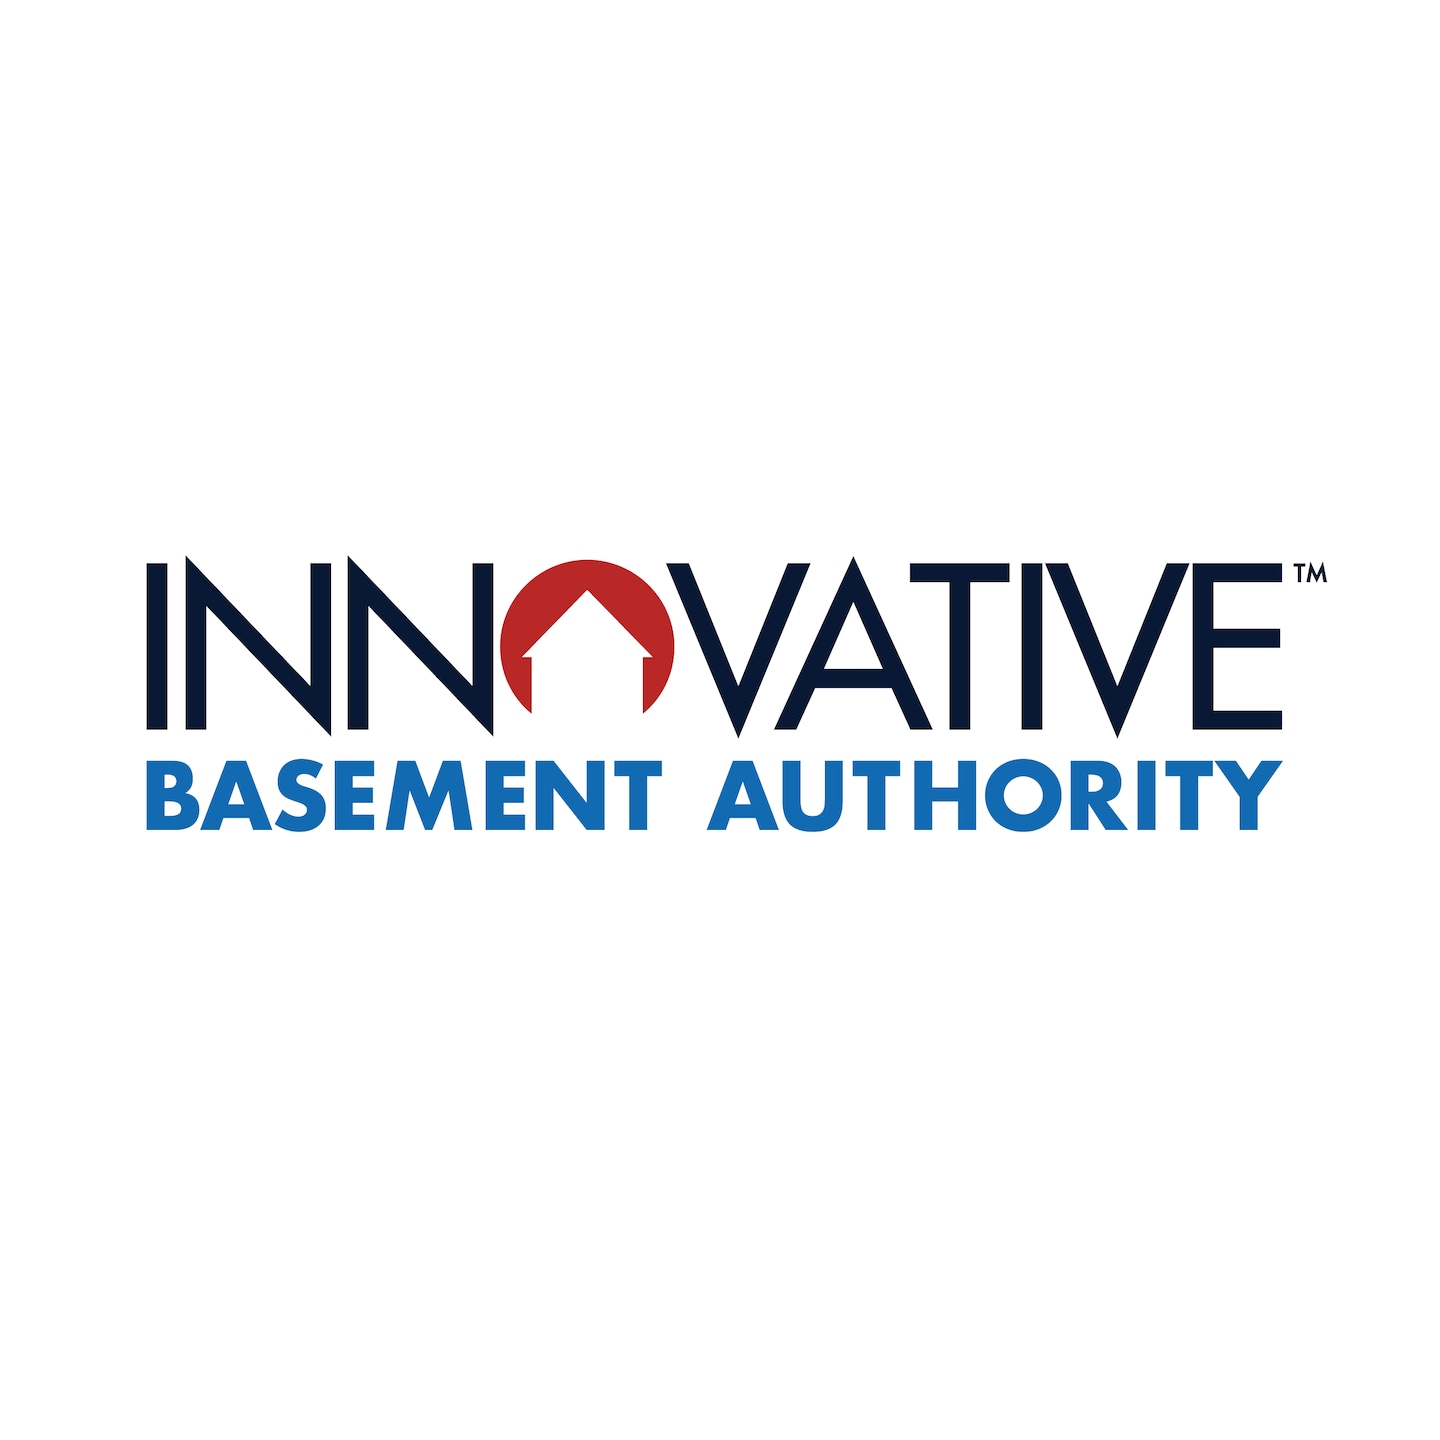 Innovative Basement Authority